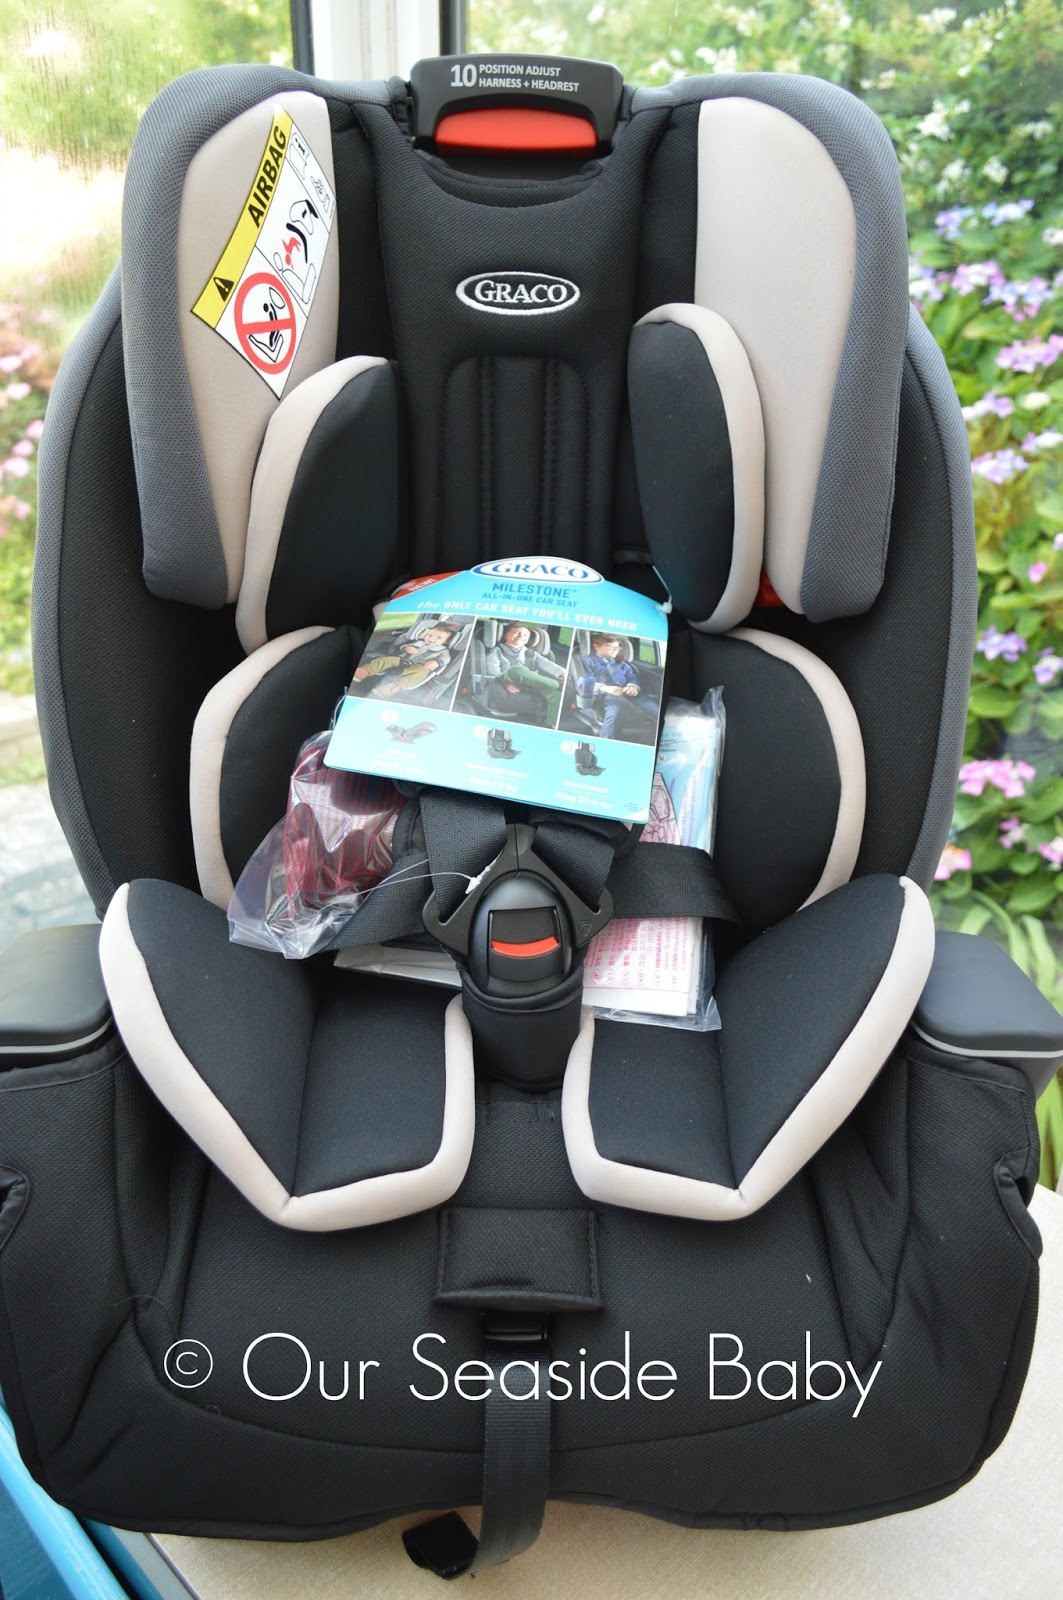 Graco Milestone All-In-One Car Seat Review | OUR SEASIDE BABY